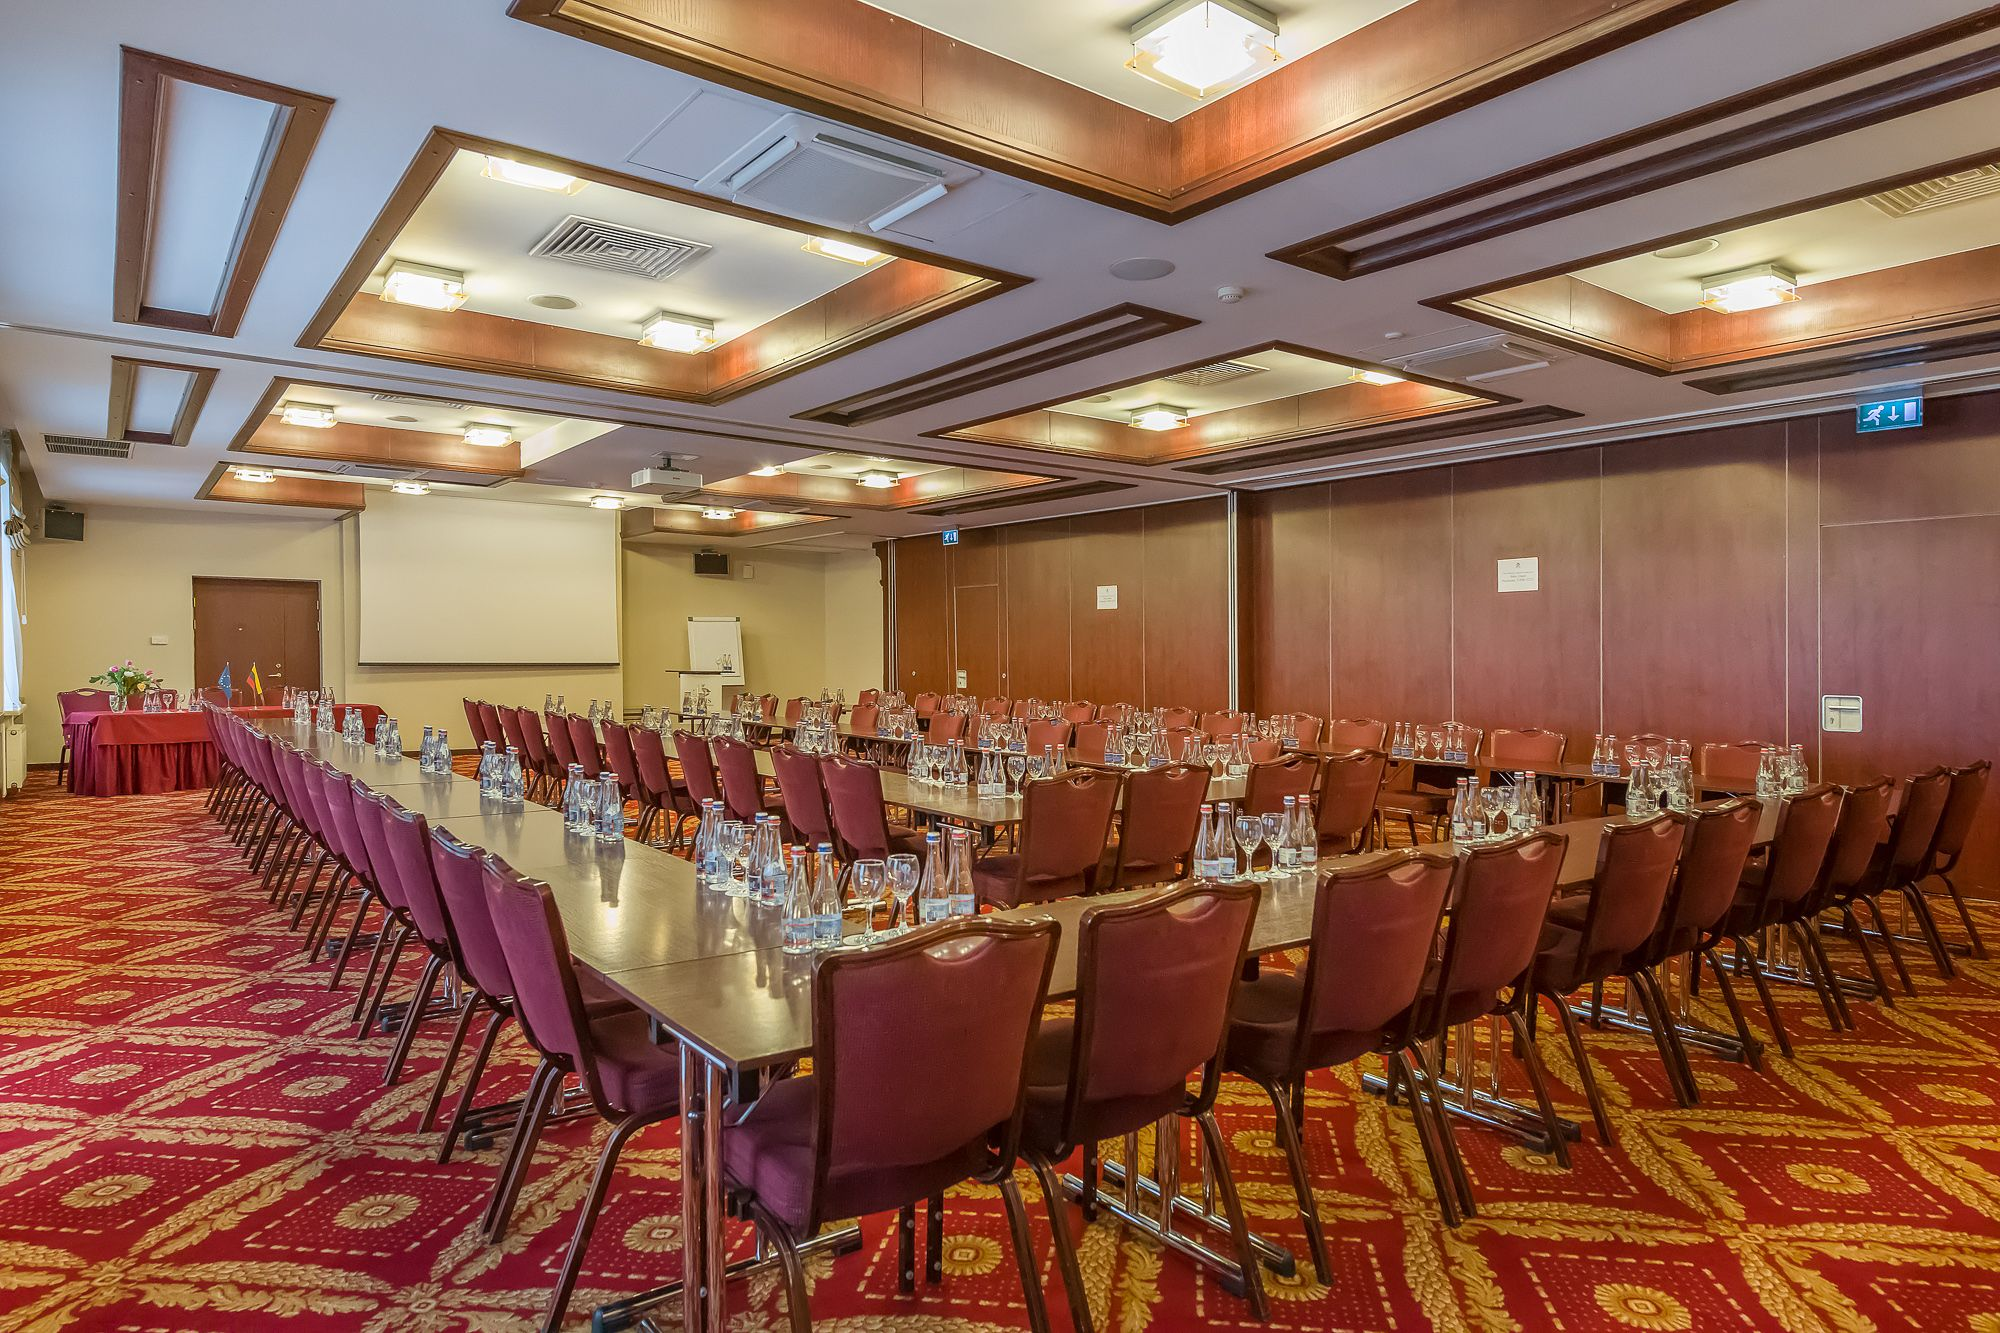 Artis Centrum Hotels Conference Room - Aida